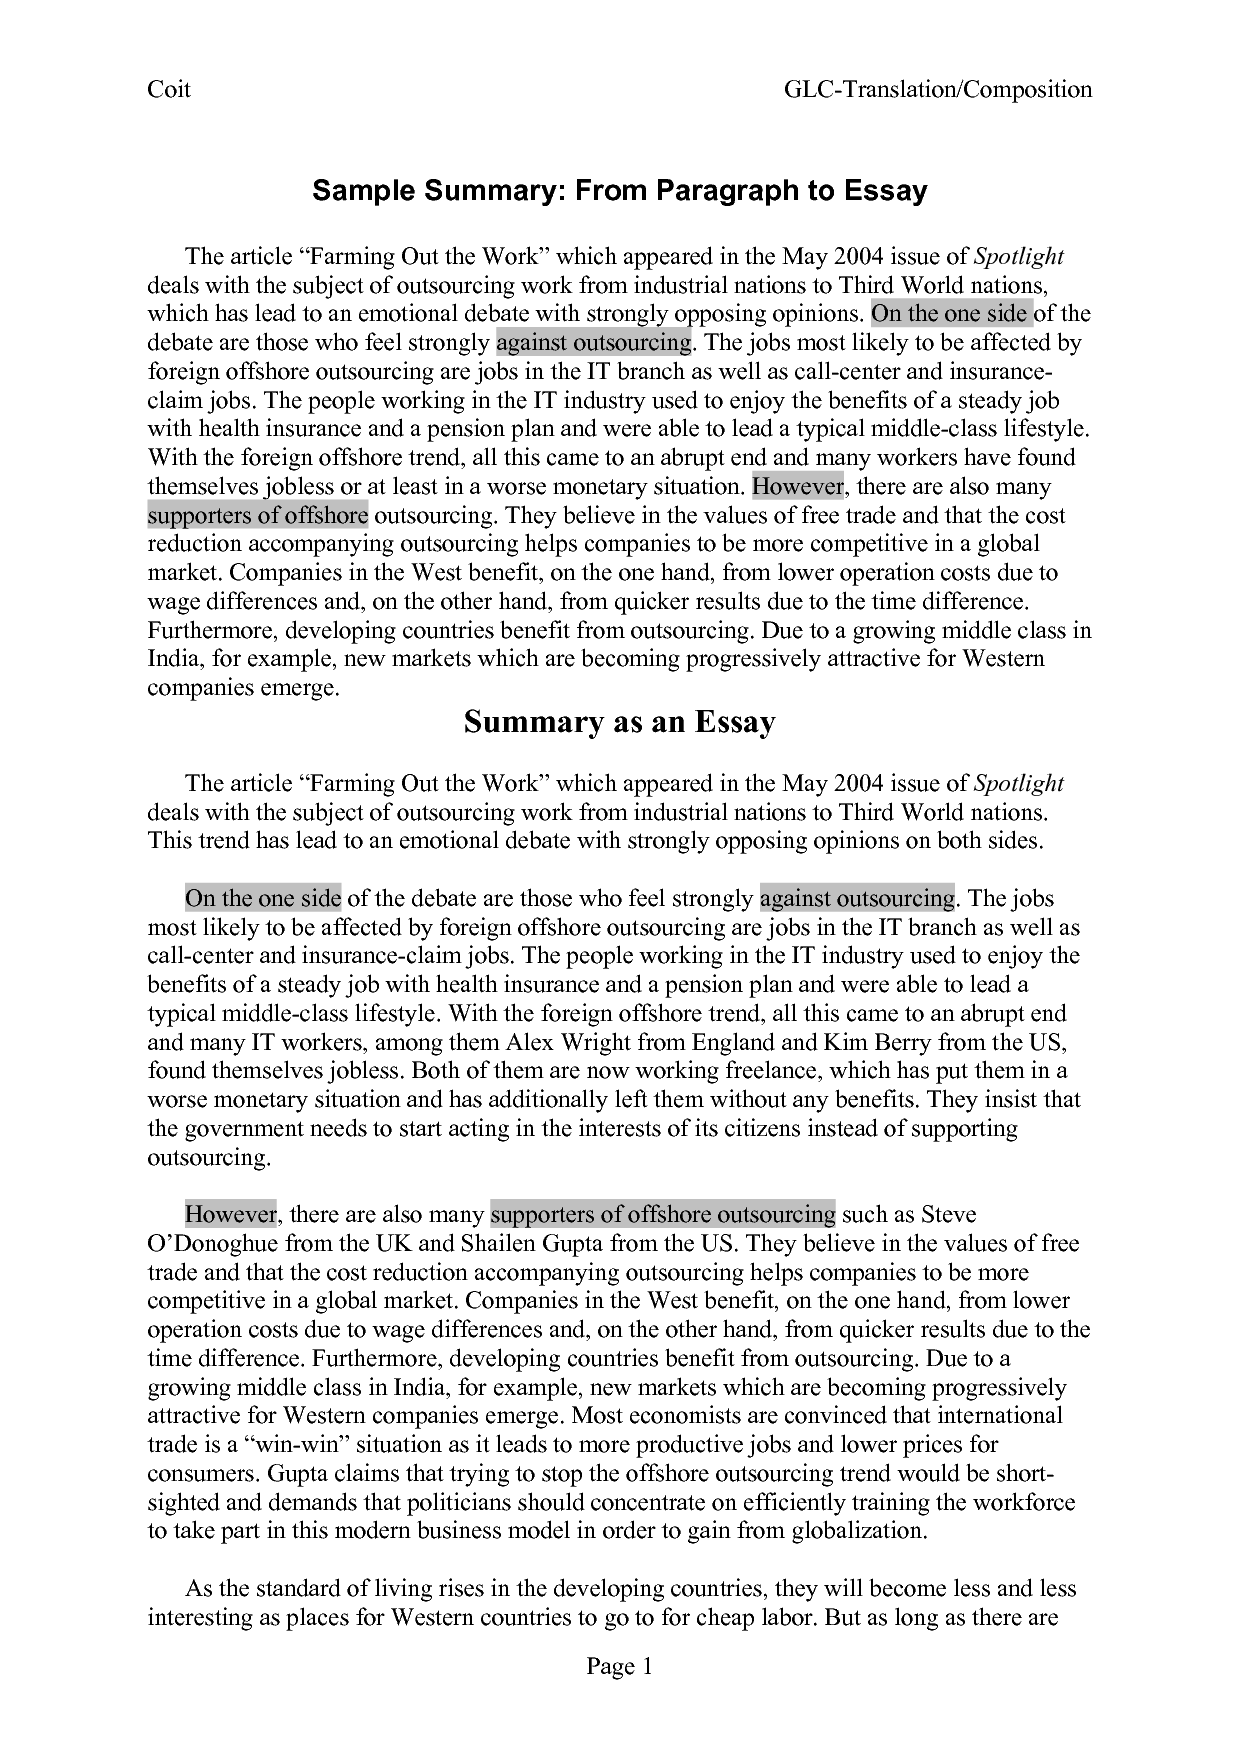 001 Sample Essay Summary Papers 248300 Astounding Example College Analysis Paper Examples Apa Full